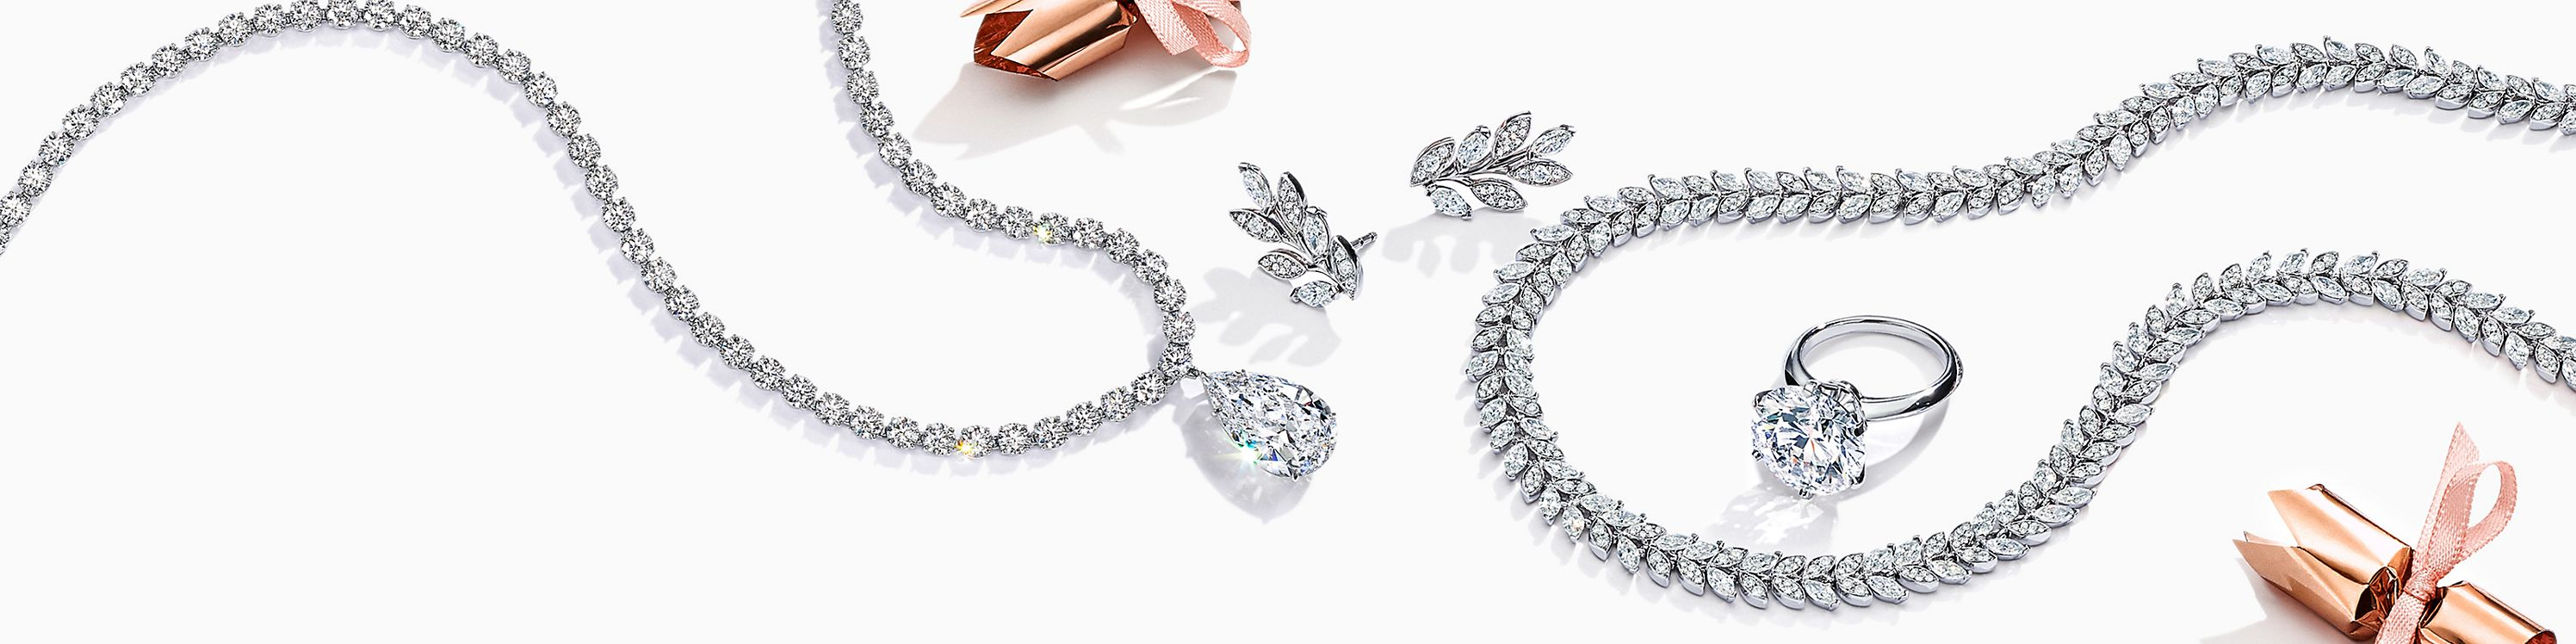 Joyas de diamantes de Tiffany & Co.